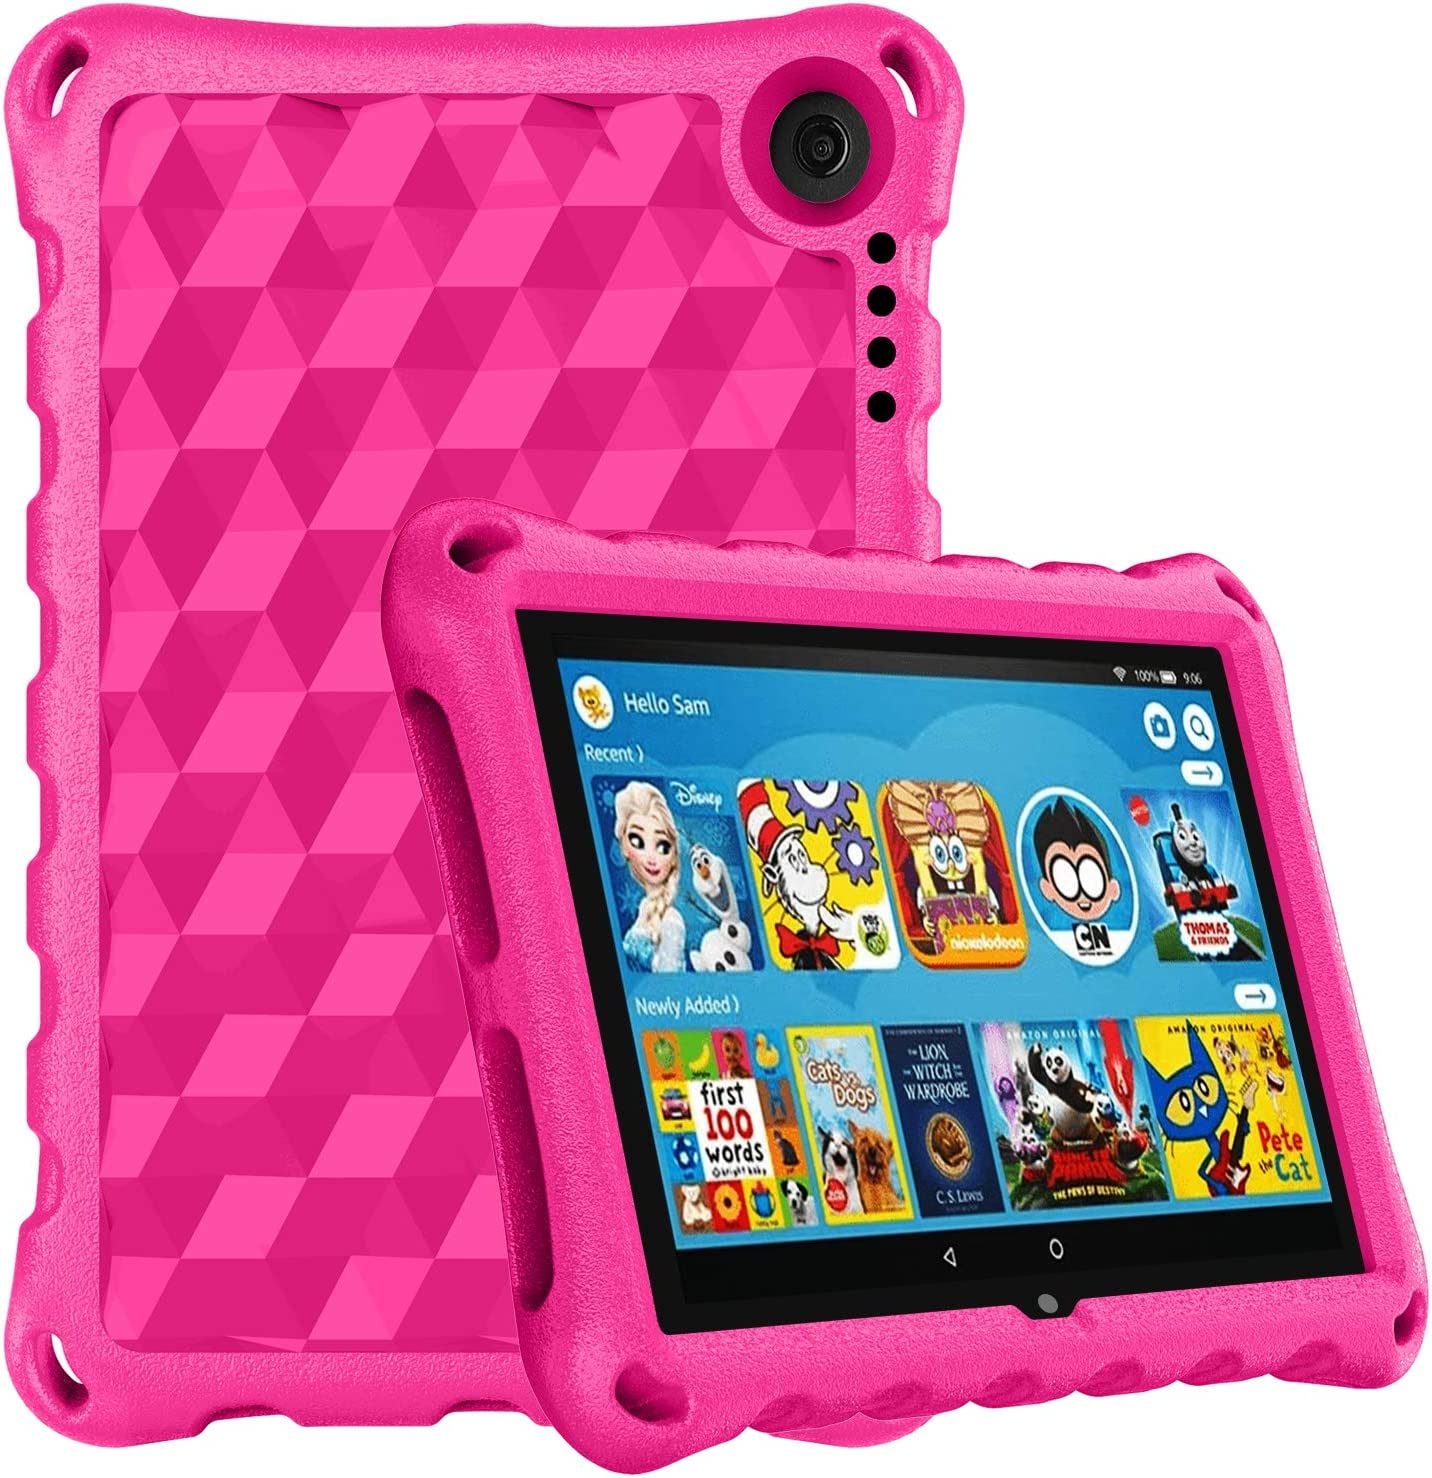 Kids Case Fits All-New 8 Plus 10th Max 56% OFF Washington Mall Tablet and Generati